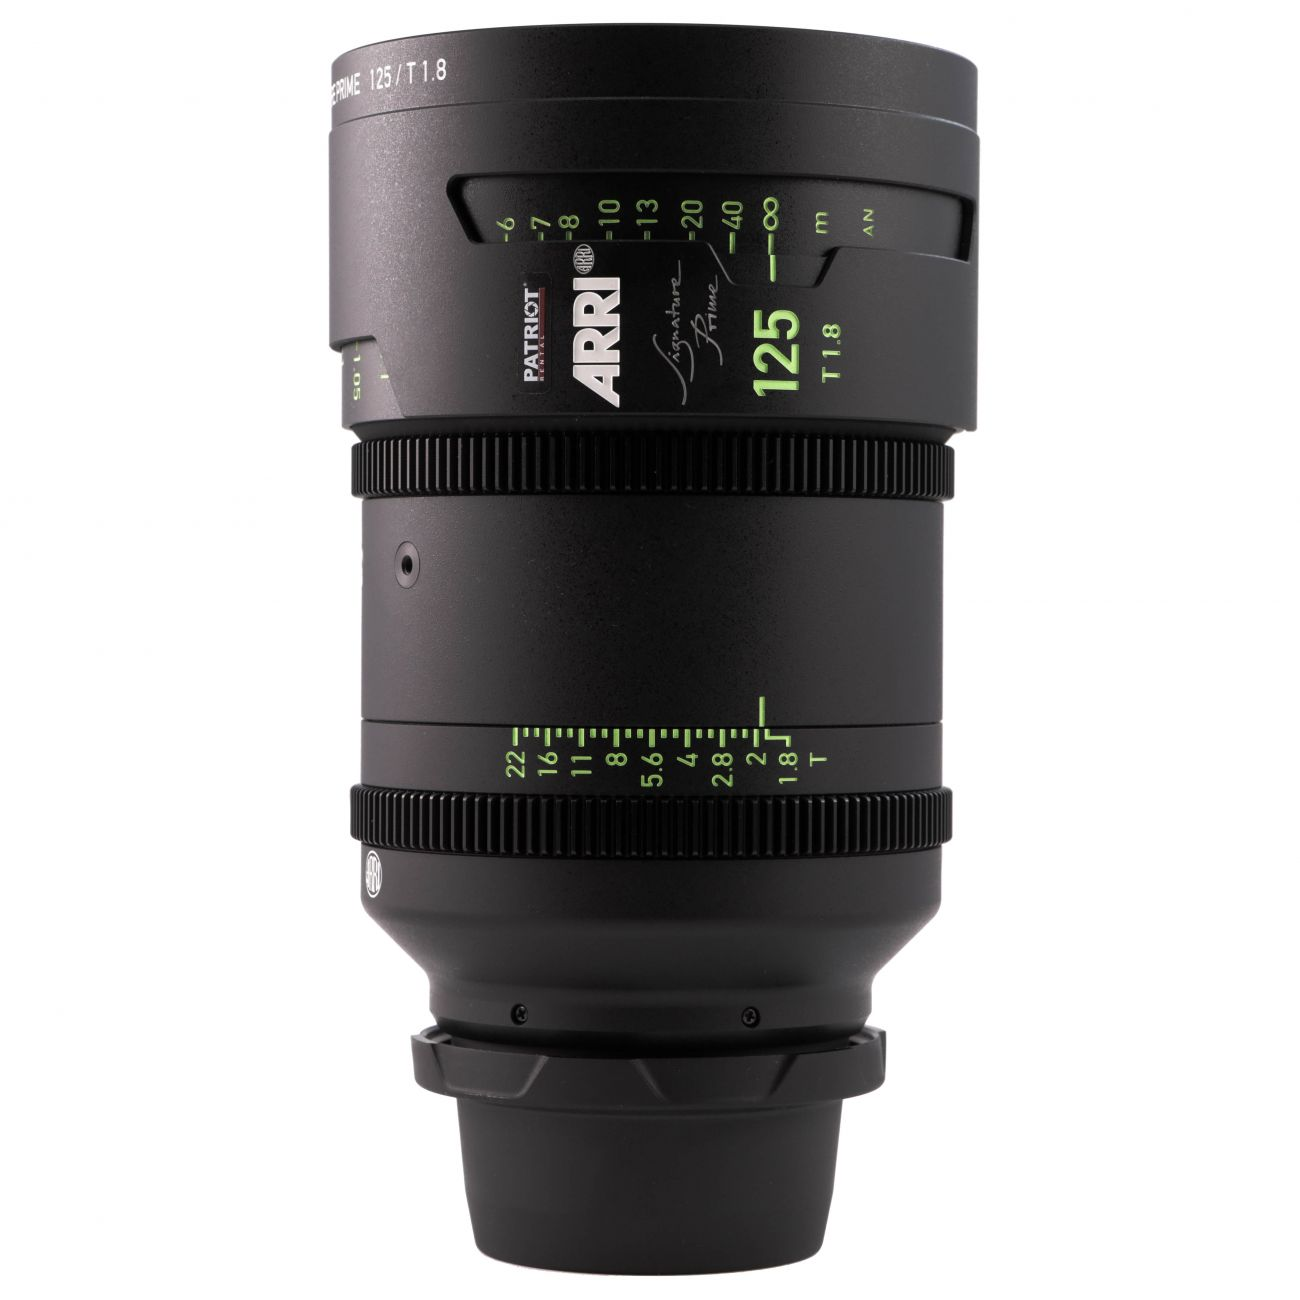 125mm ARRI SIGNATURE PRIME Lens T1.8